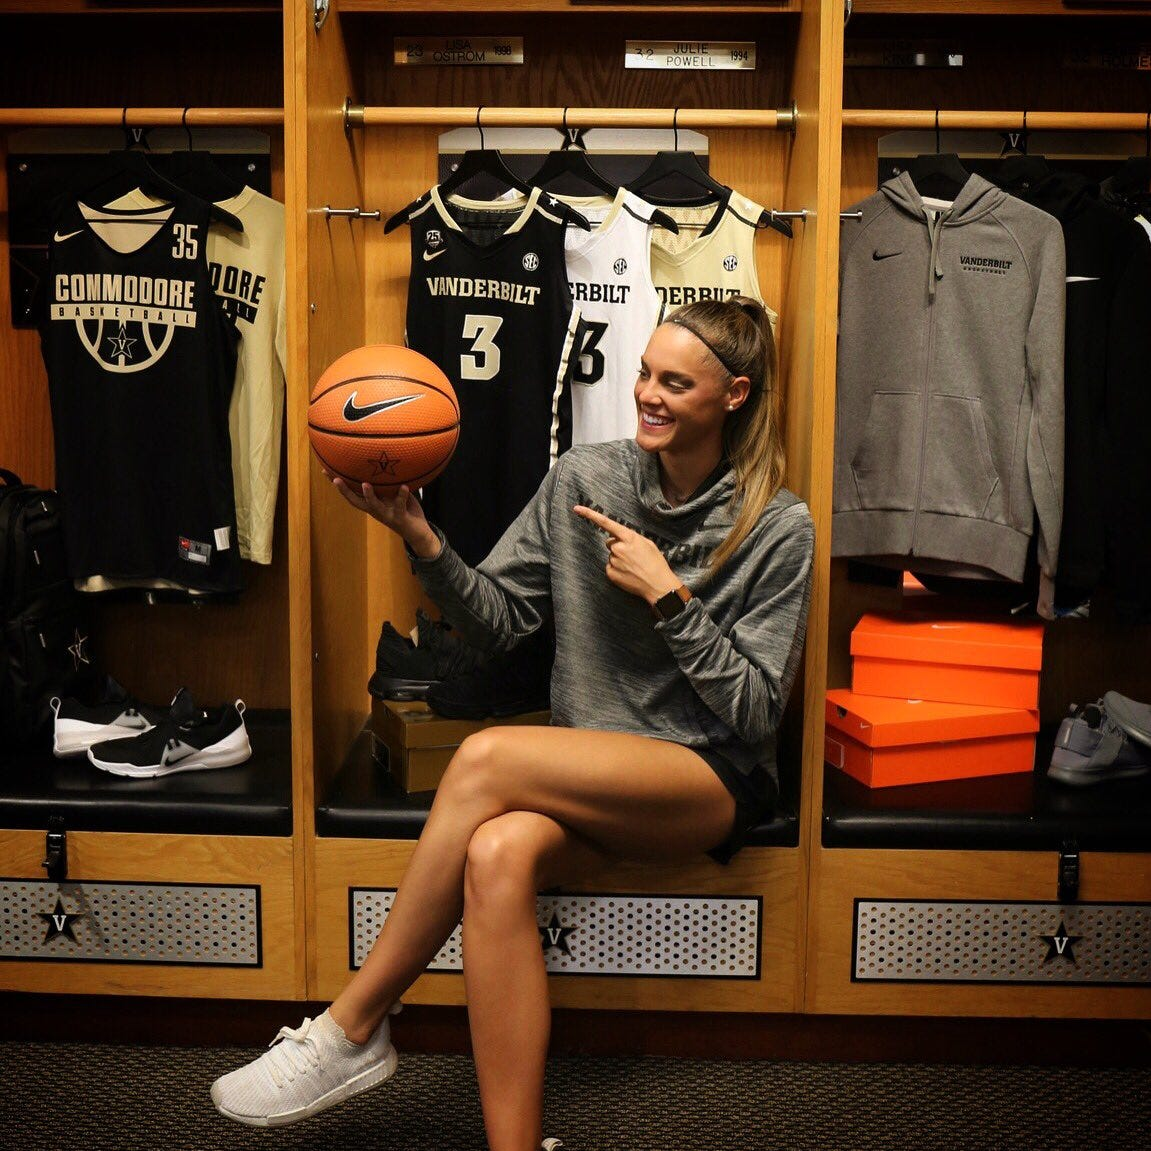 Kortney Dunbar bleeds Lady Vols orange, but she's reppin' Vanderbilt black and gold as a coach